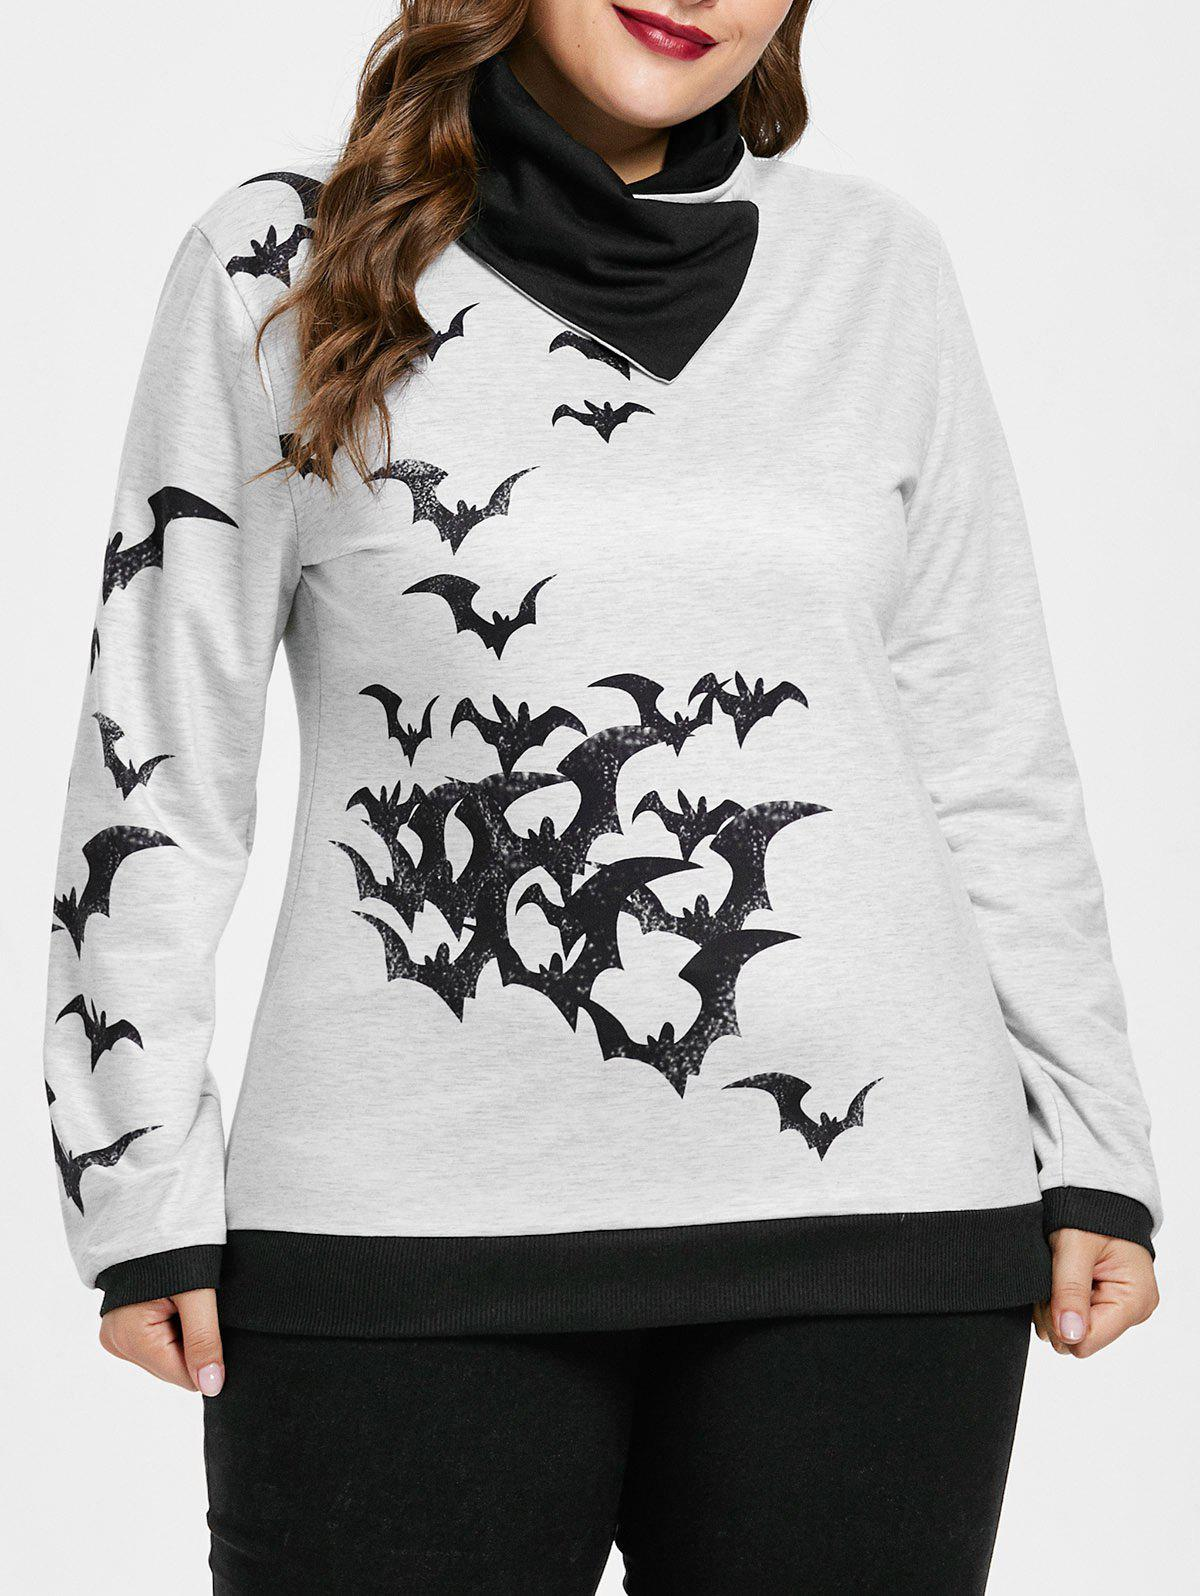 Plus Size Color Block Halloween Sweatshirt - LIGHT GRAY 1X